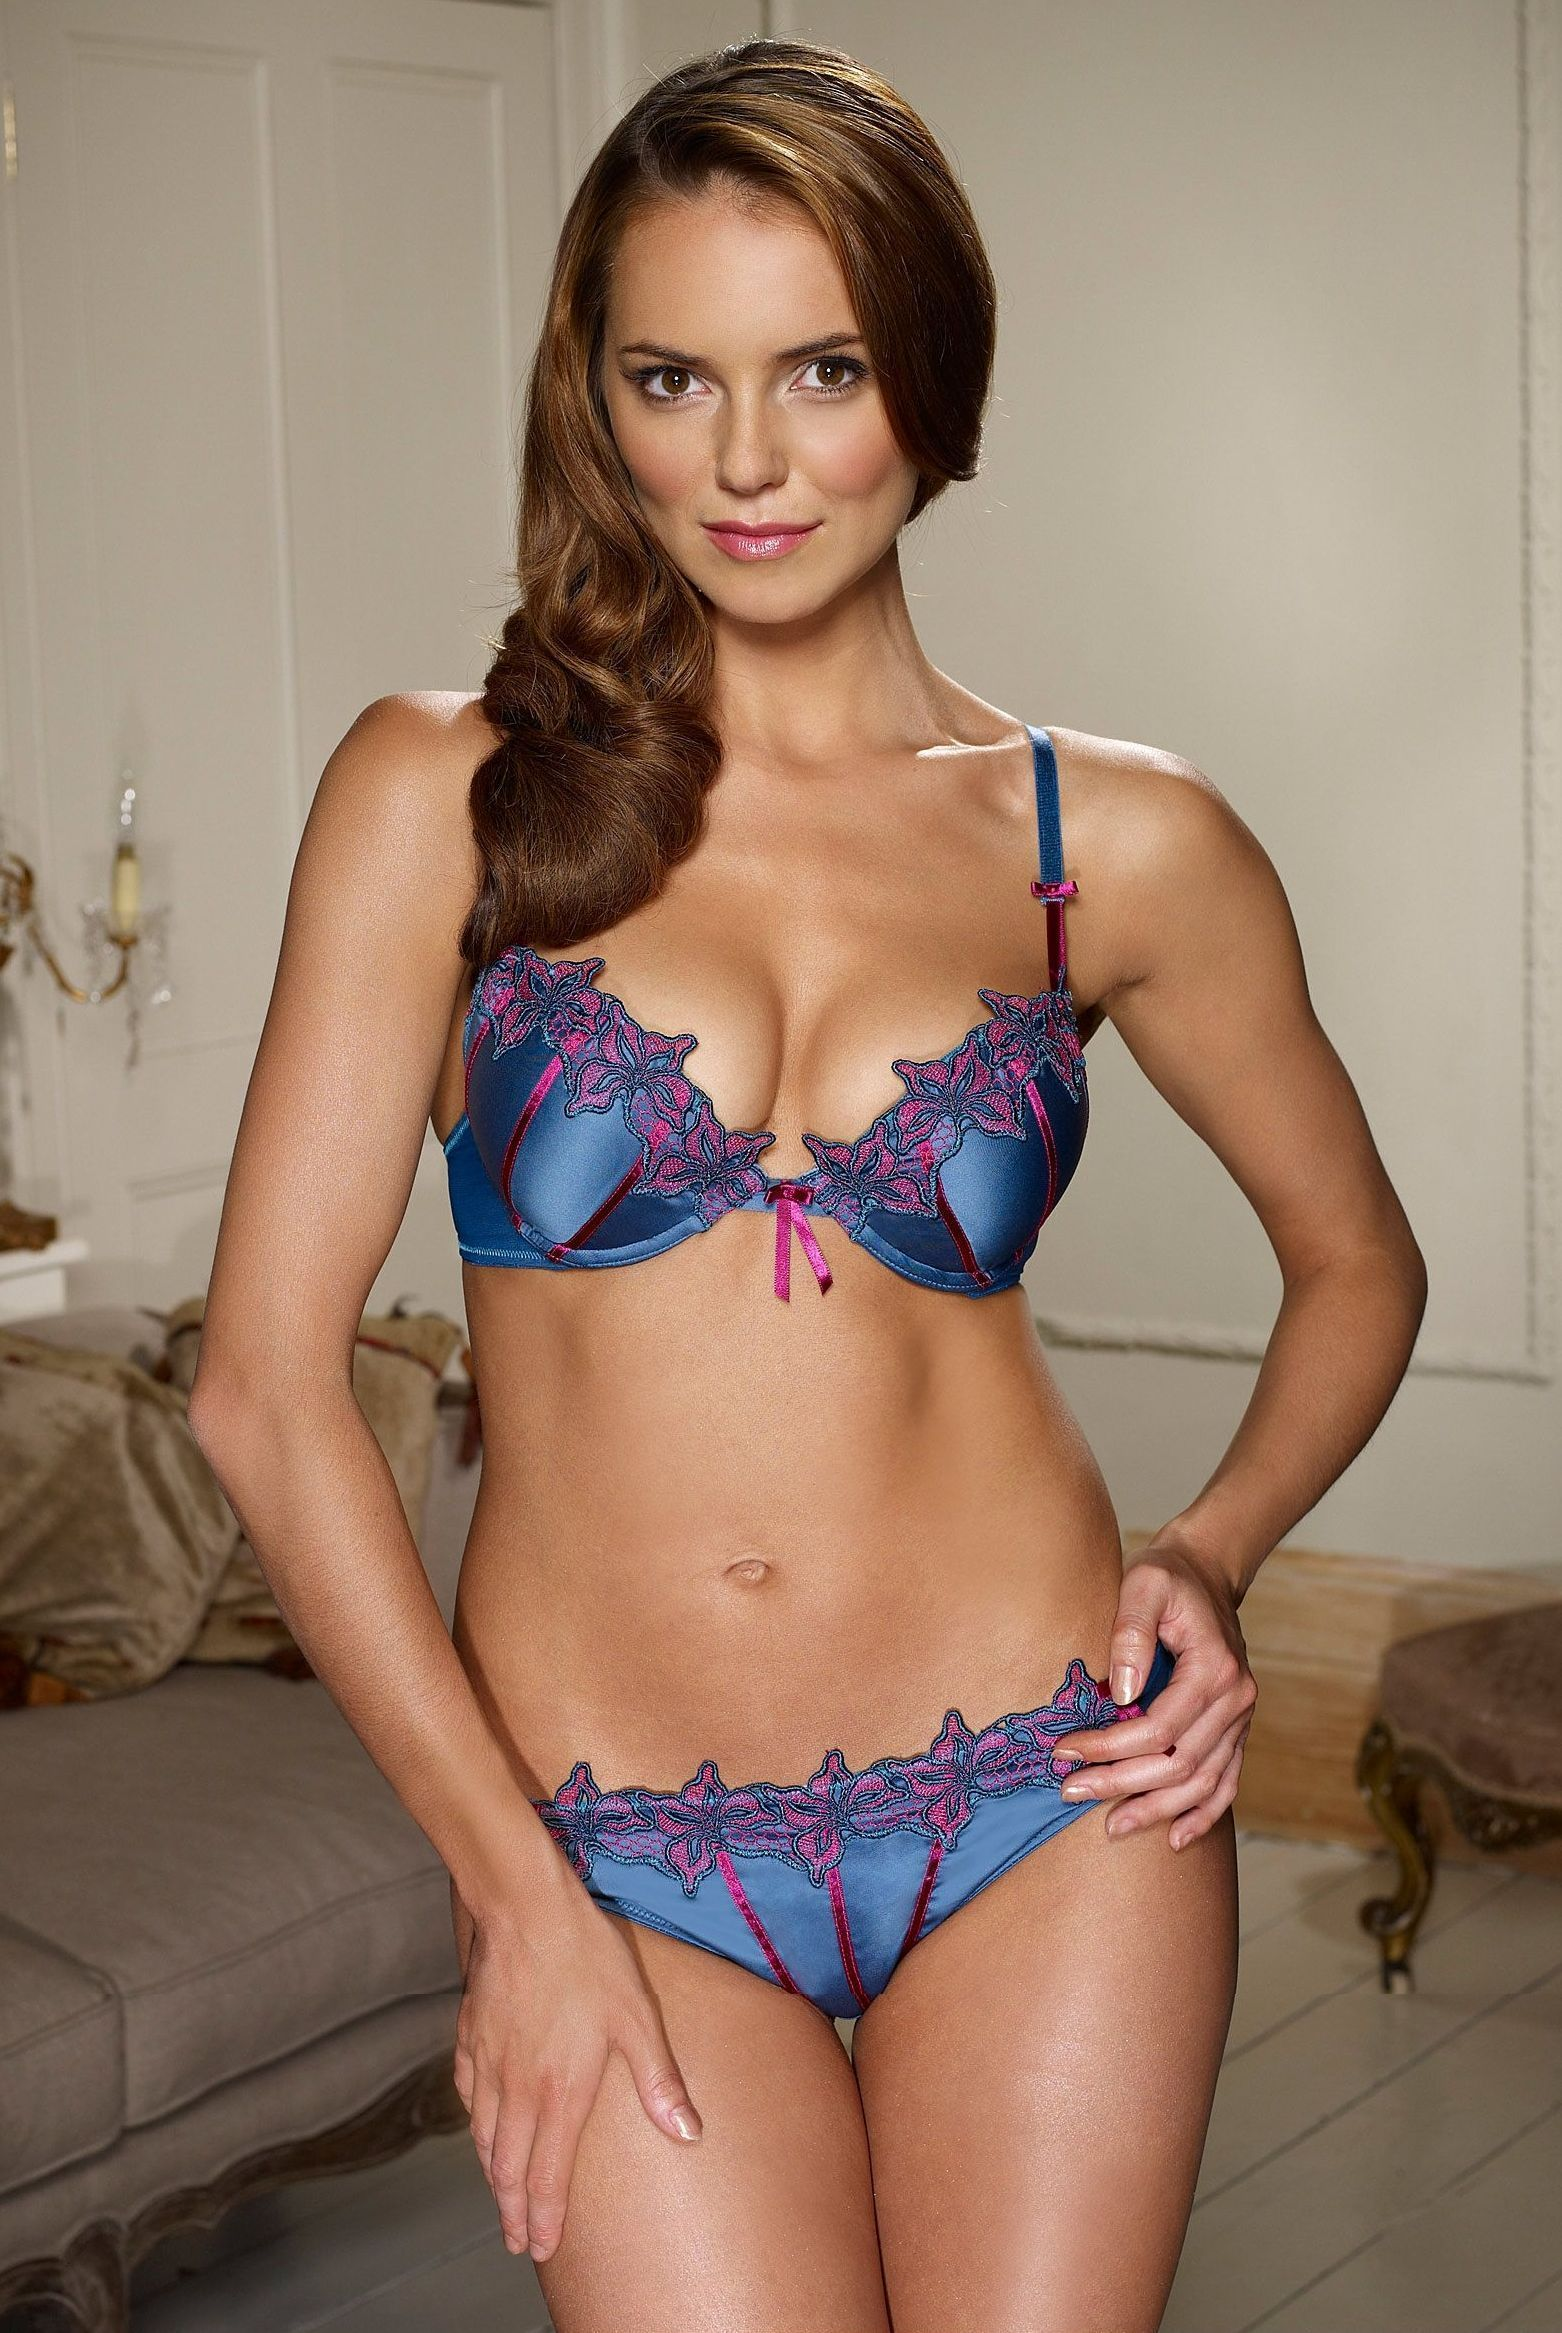 Kara Tointon Kara-Lingerie Photo Shoot